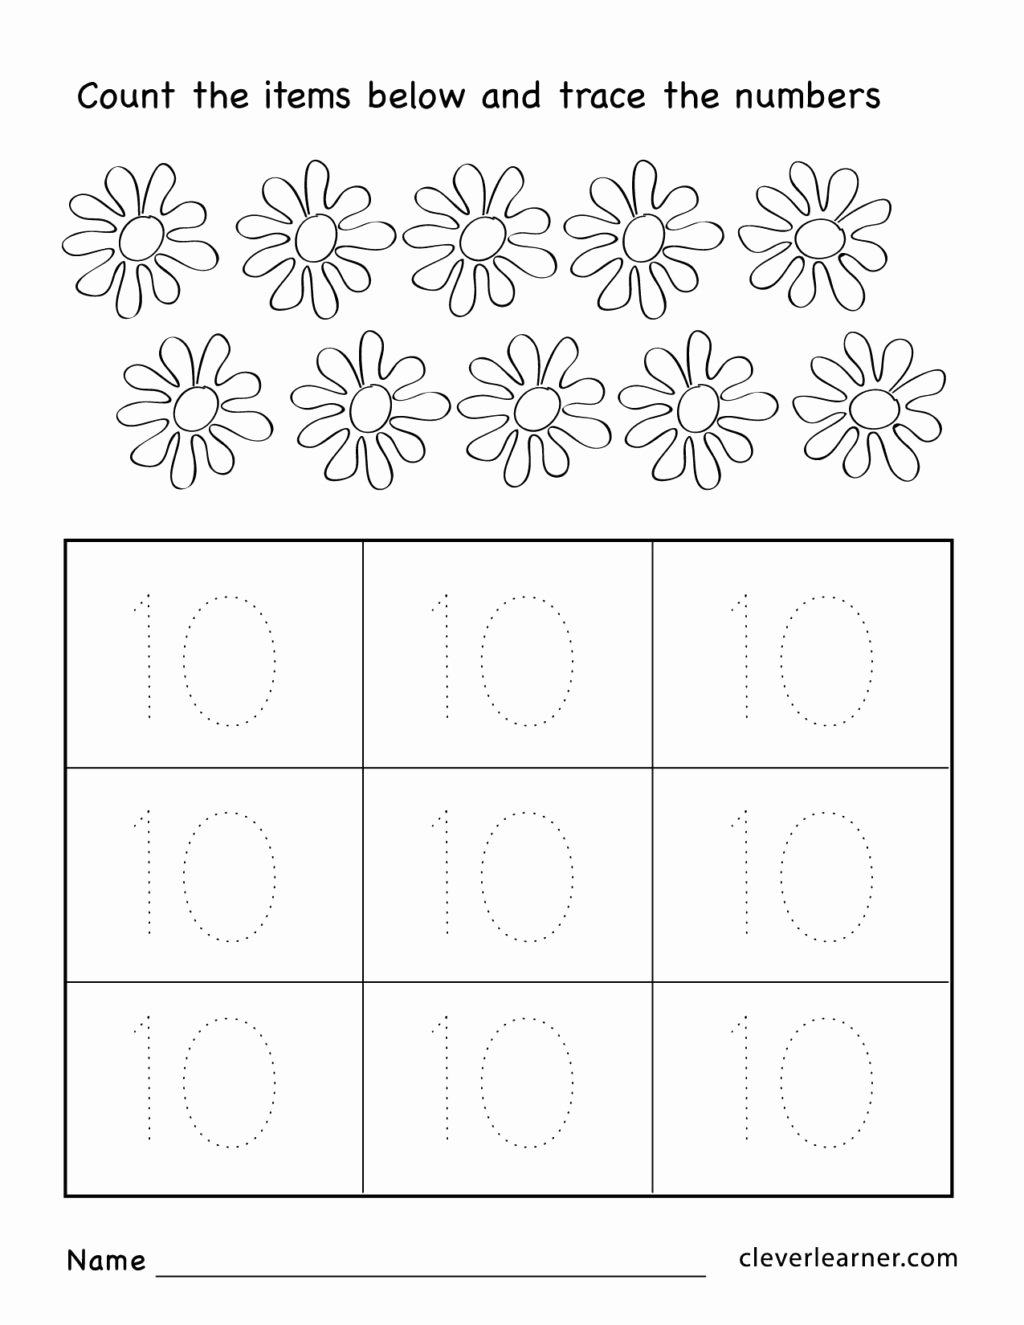 Printable Numbers Worksheets for Preschoolers top Worksheet Free Printable Number Worksheets for